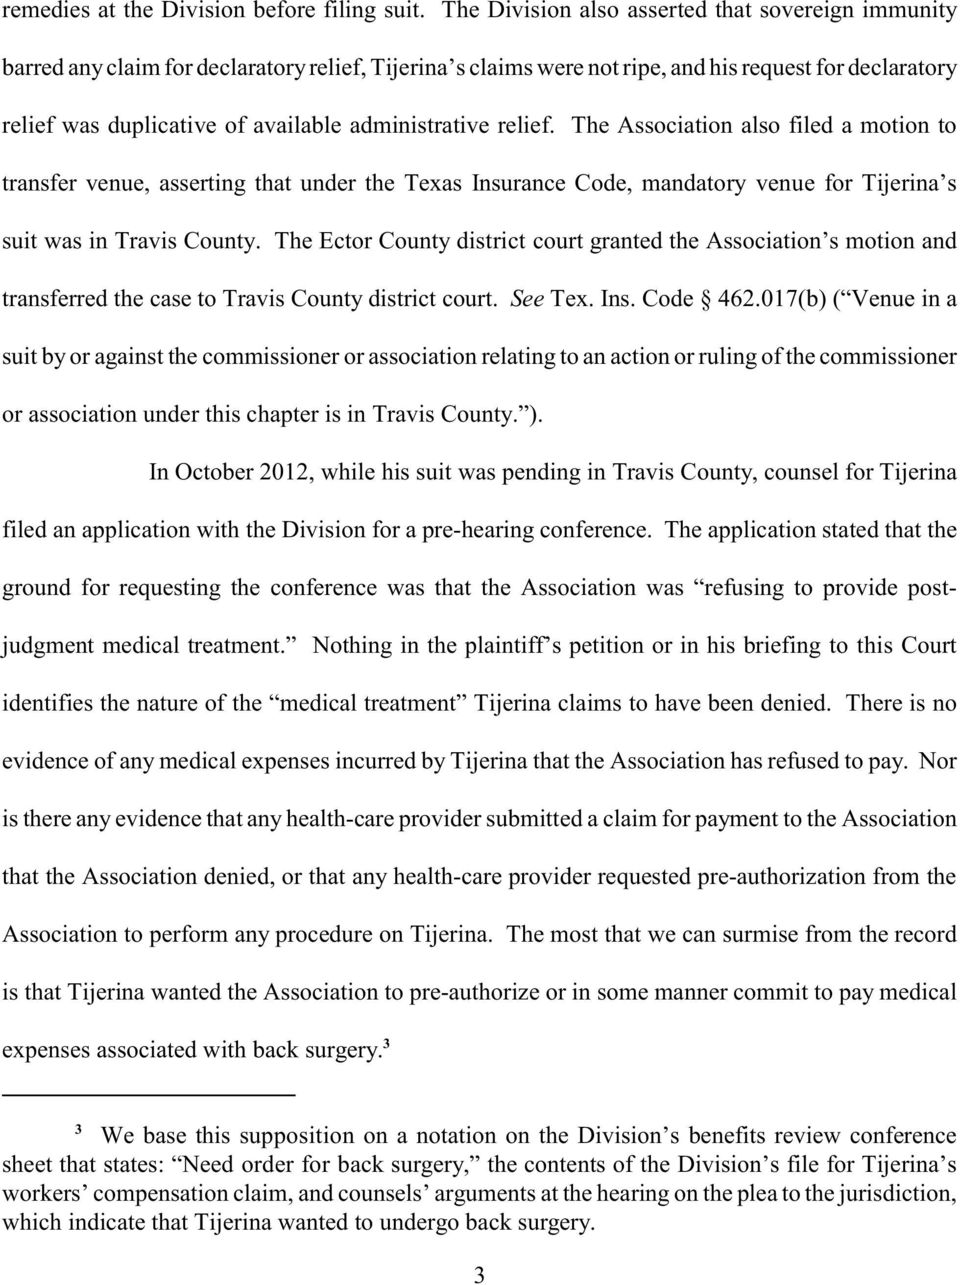 administrative relief. The Association also filed a motion to transfer venue, asserting that under the Texas Insurance Code, mandatory venue for Tijerina s suit was in Travis County.